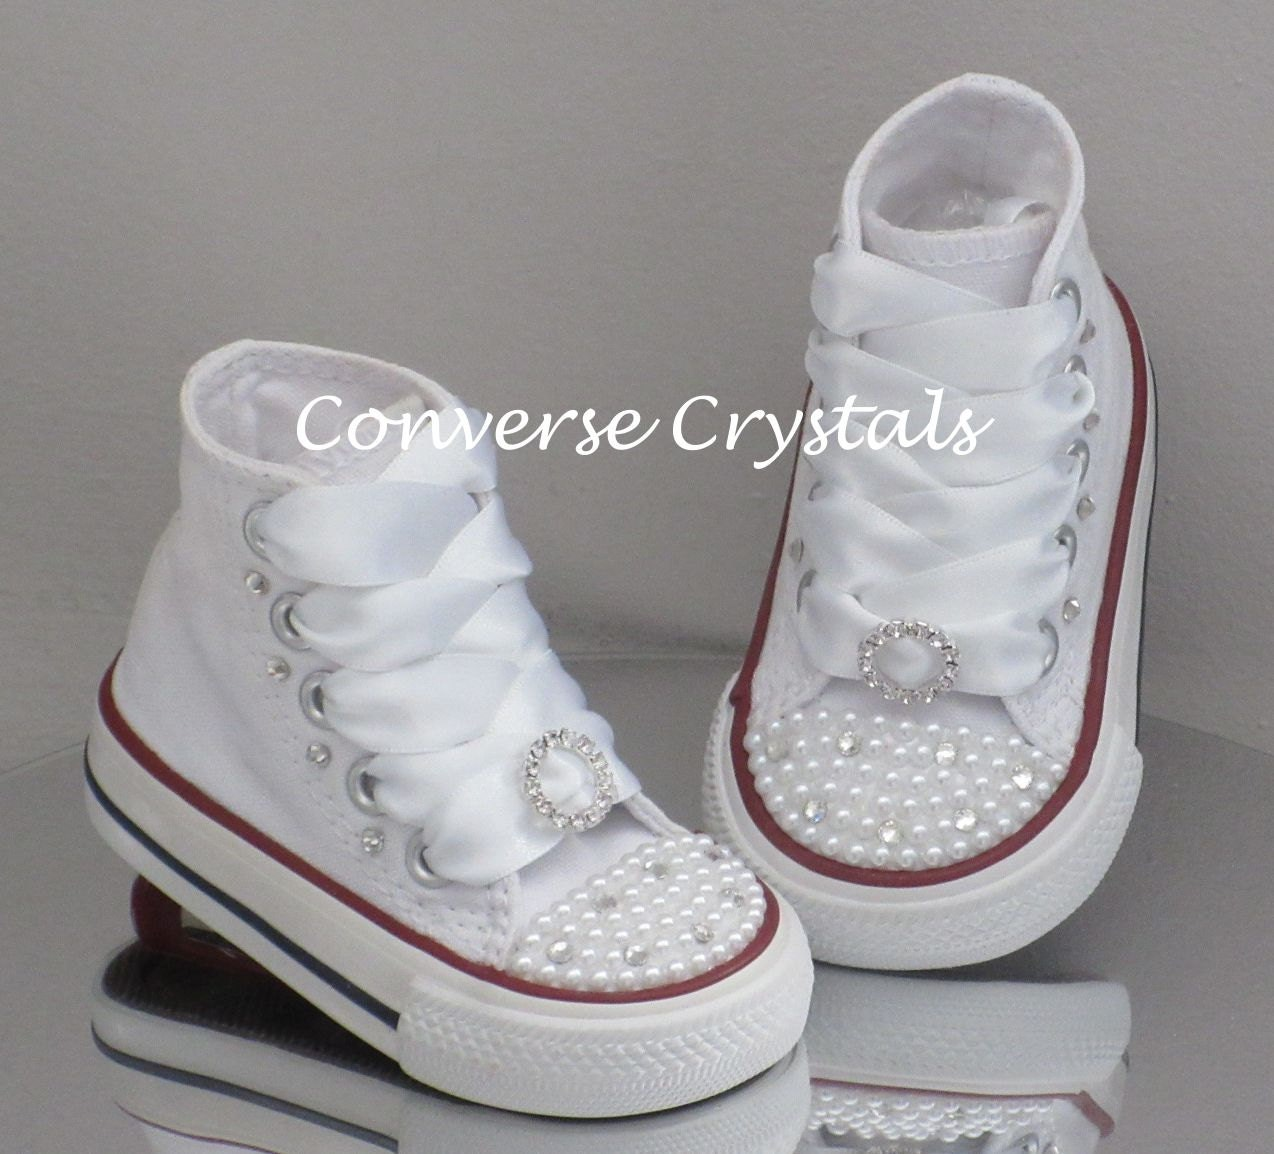 b137ecfa6980 Custom Crystal and Pearl  Bling  Toes Converse Sizes 2-10. Colour ...